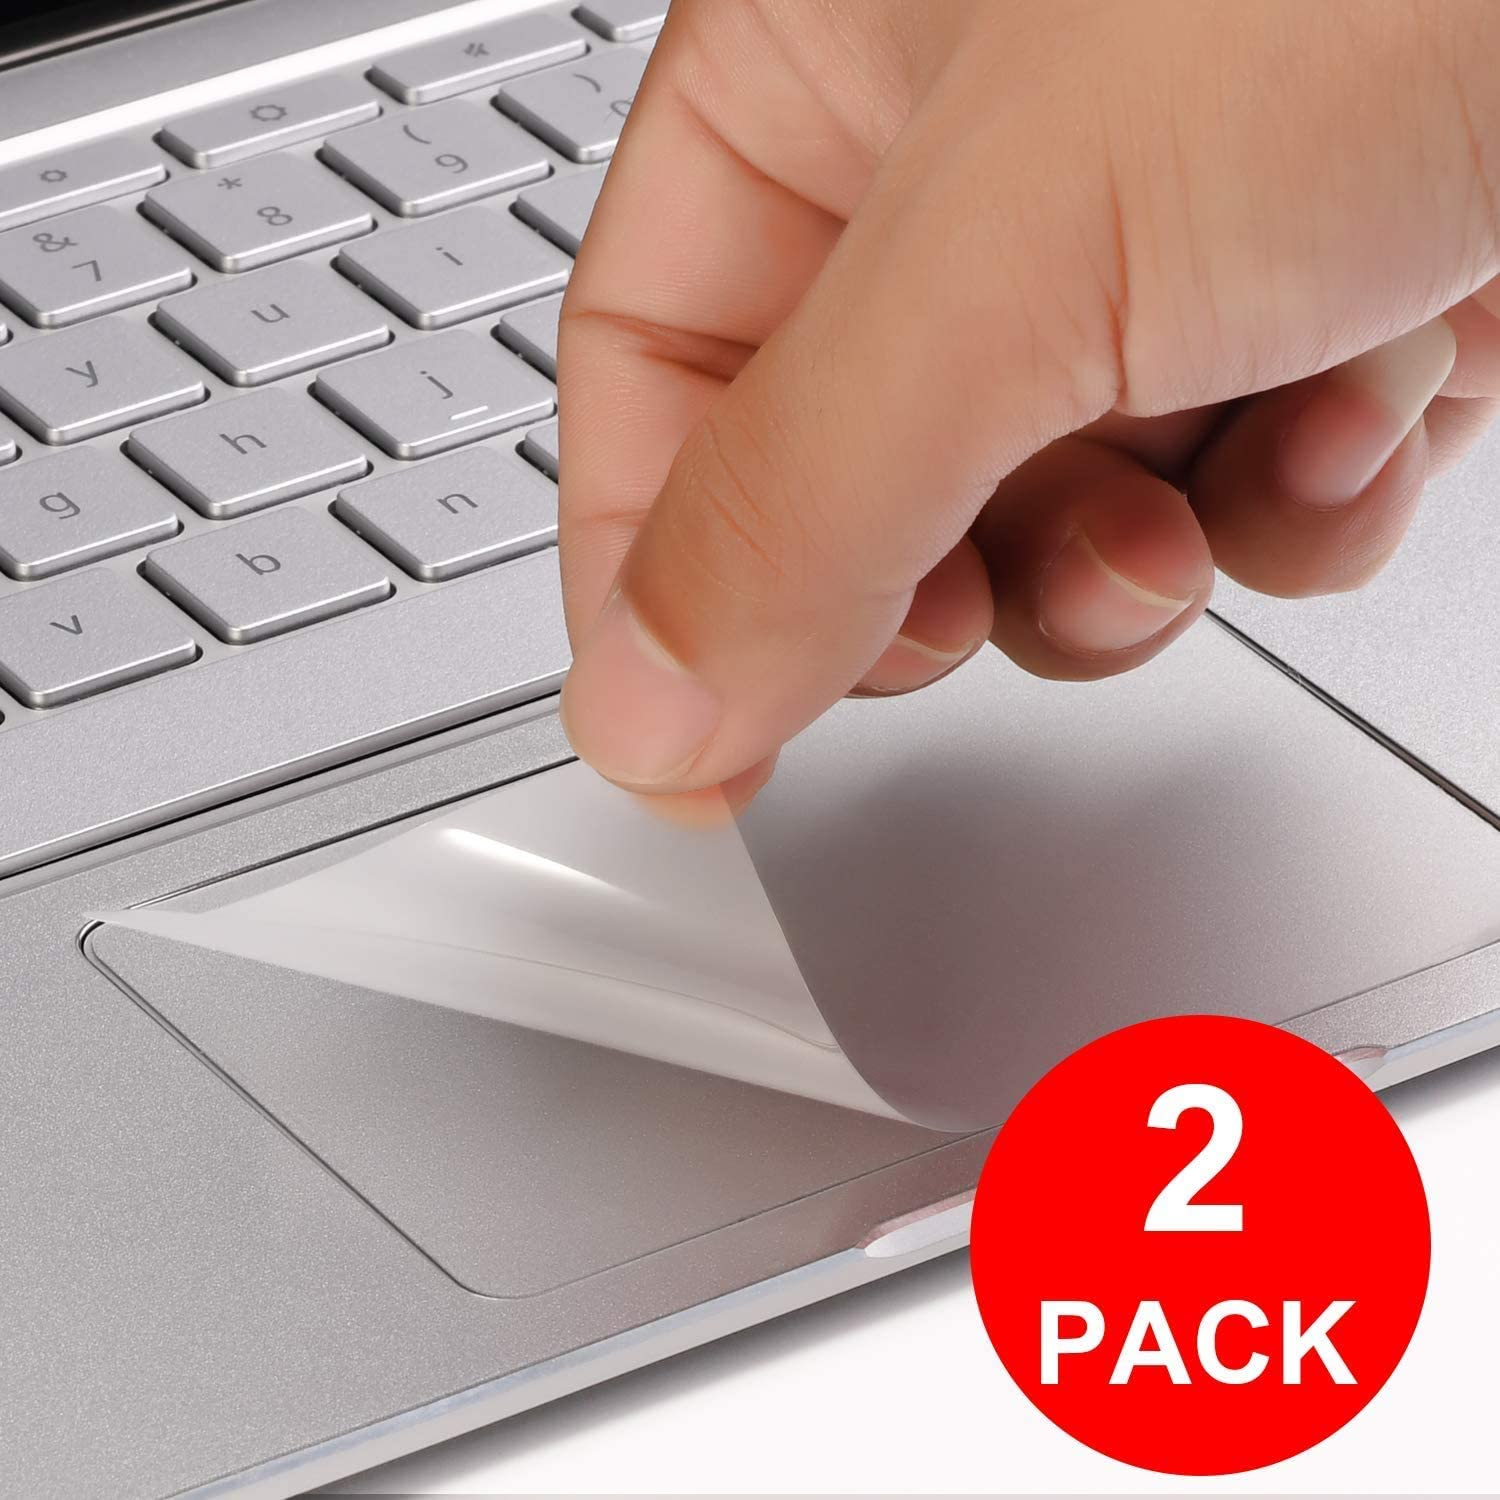 2 Pack Lapogy MacBook Air 13 inch Trackpad Fashionable Skin New item Protector Cover